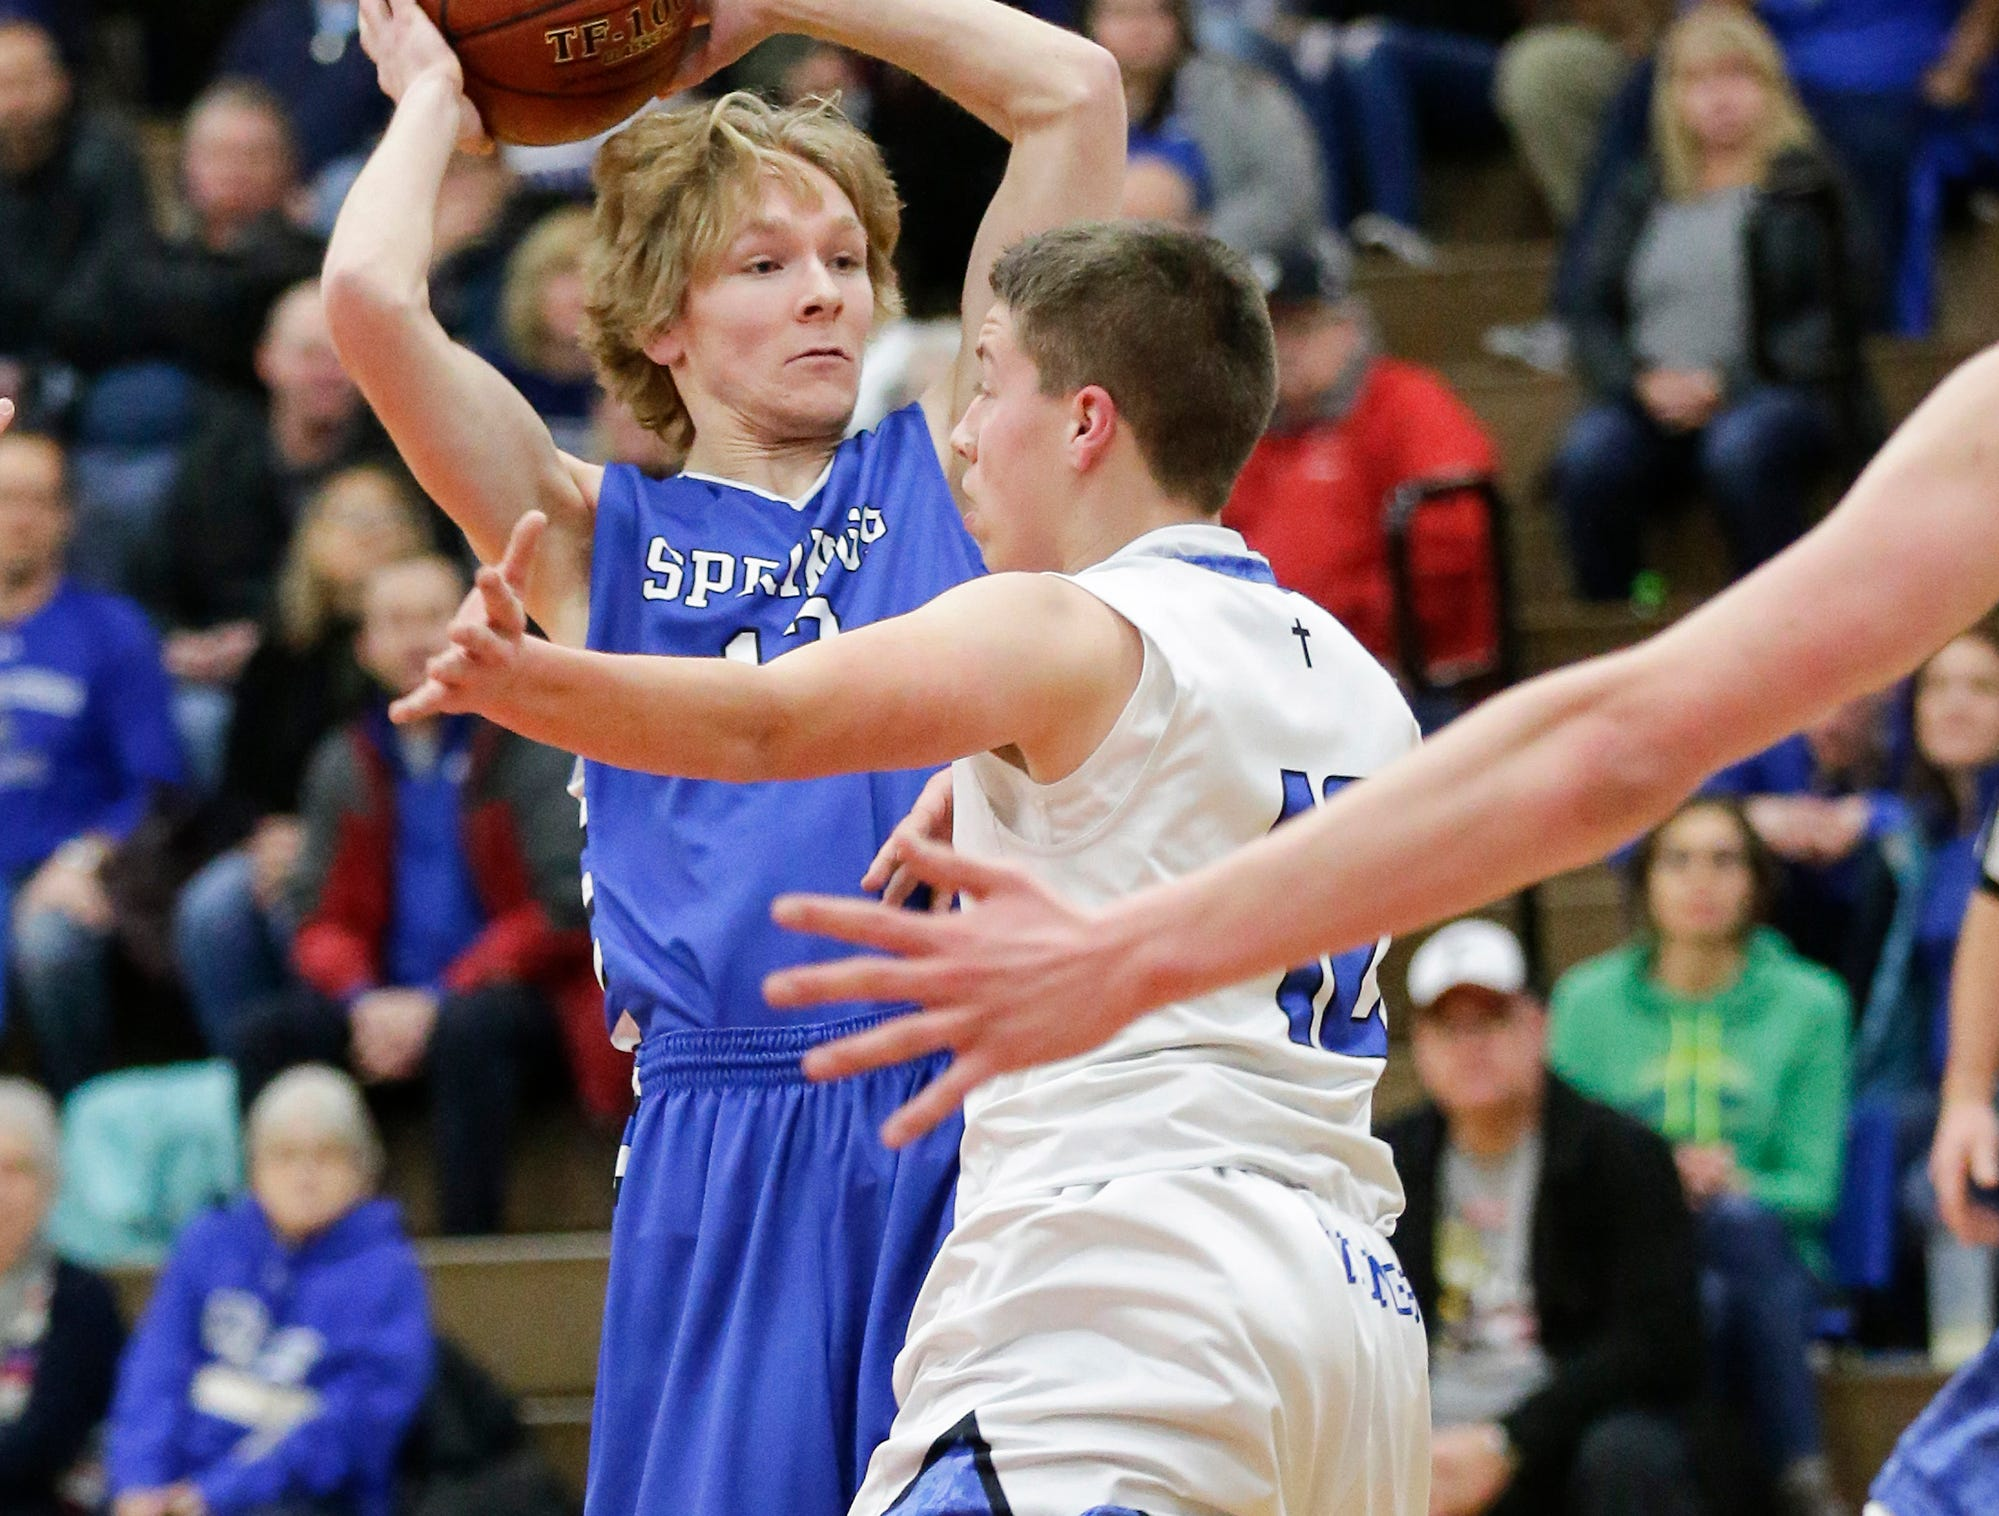 St. Mary's Spring Academy boys basketball's Myles Ottery tries to get a pass off past Winnebago Lutheran Academy' Bo Miller Tuesday, Jan. 8, 2019, during their game in Fond du Lac. Winnebago Lutheran Academy won the game 69-66.